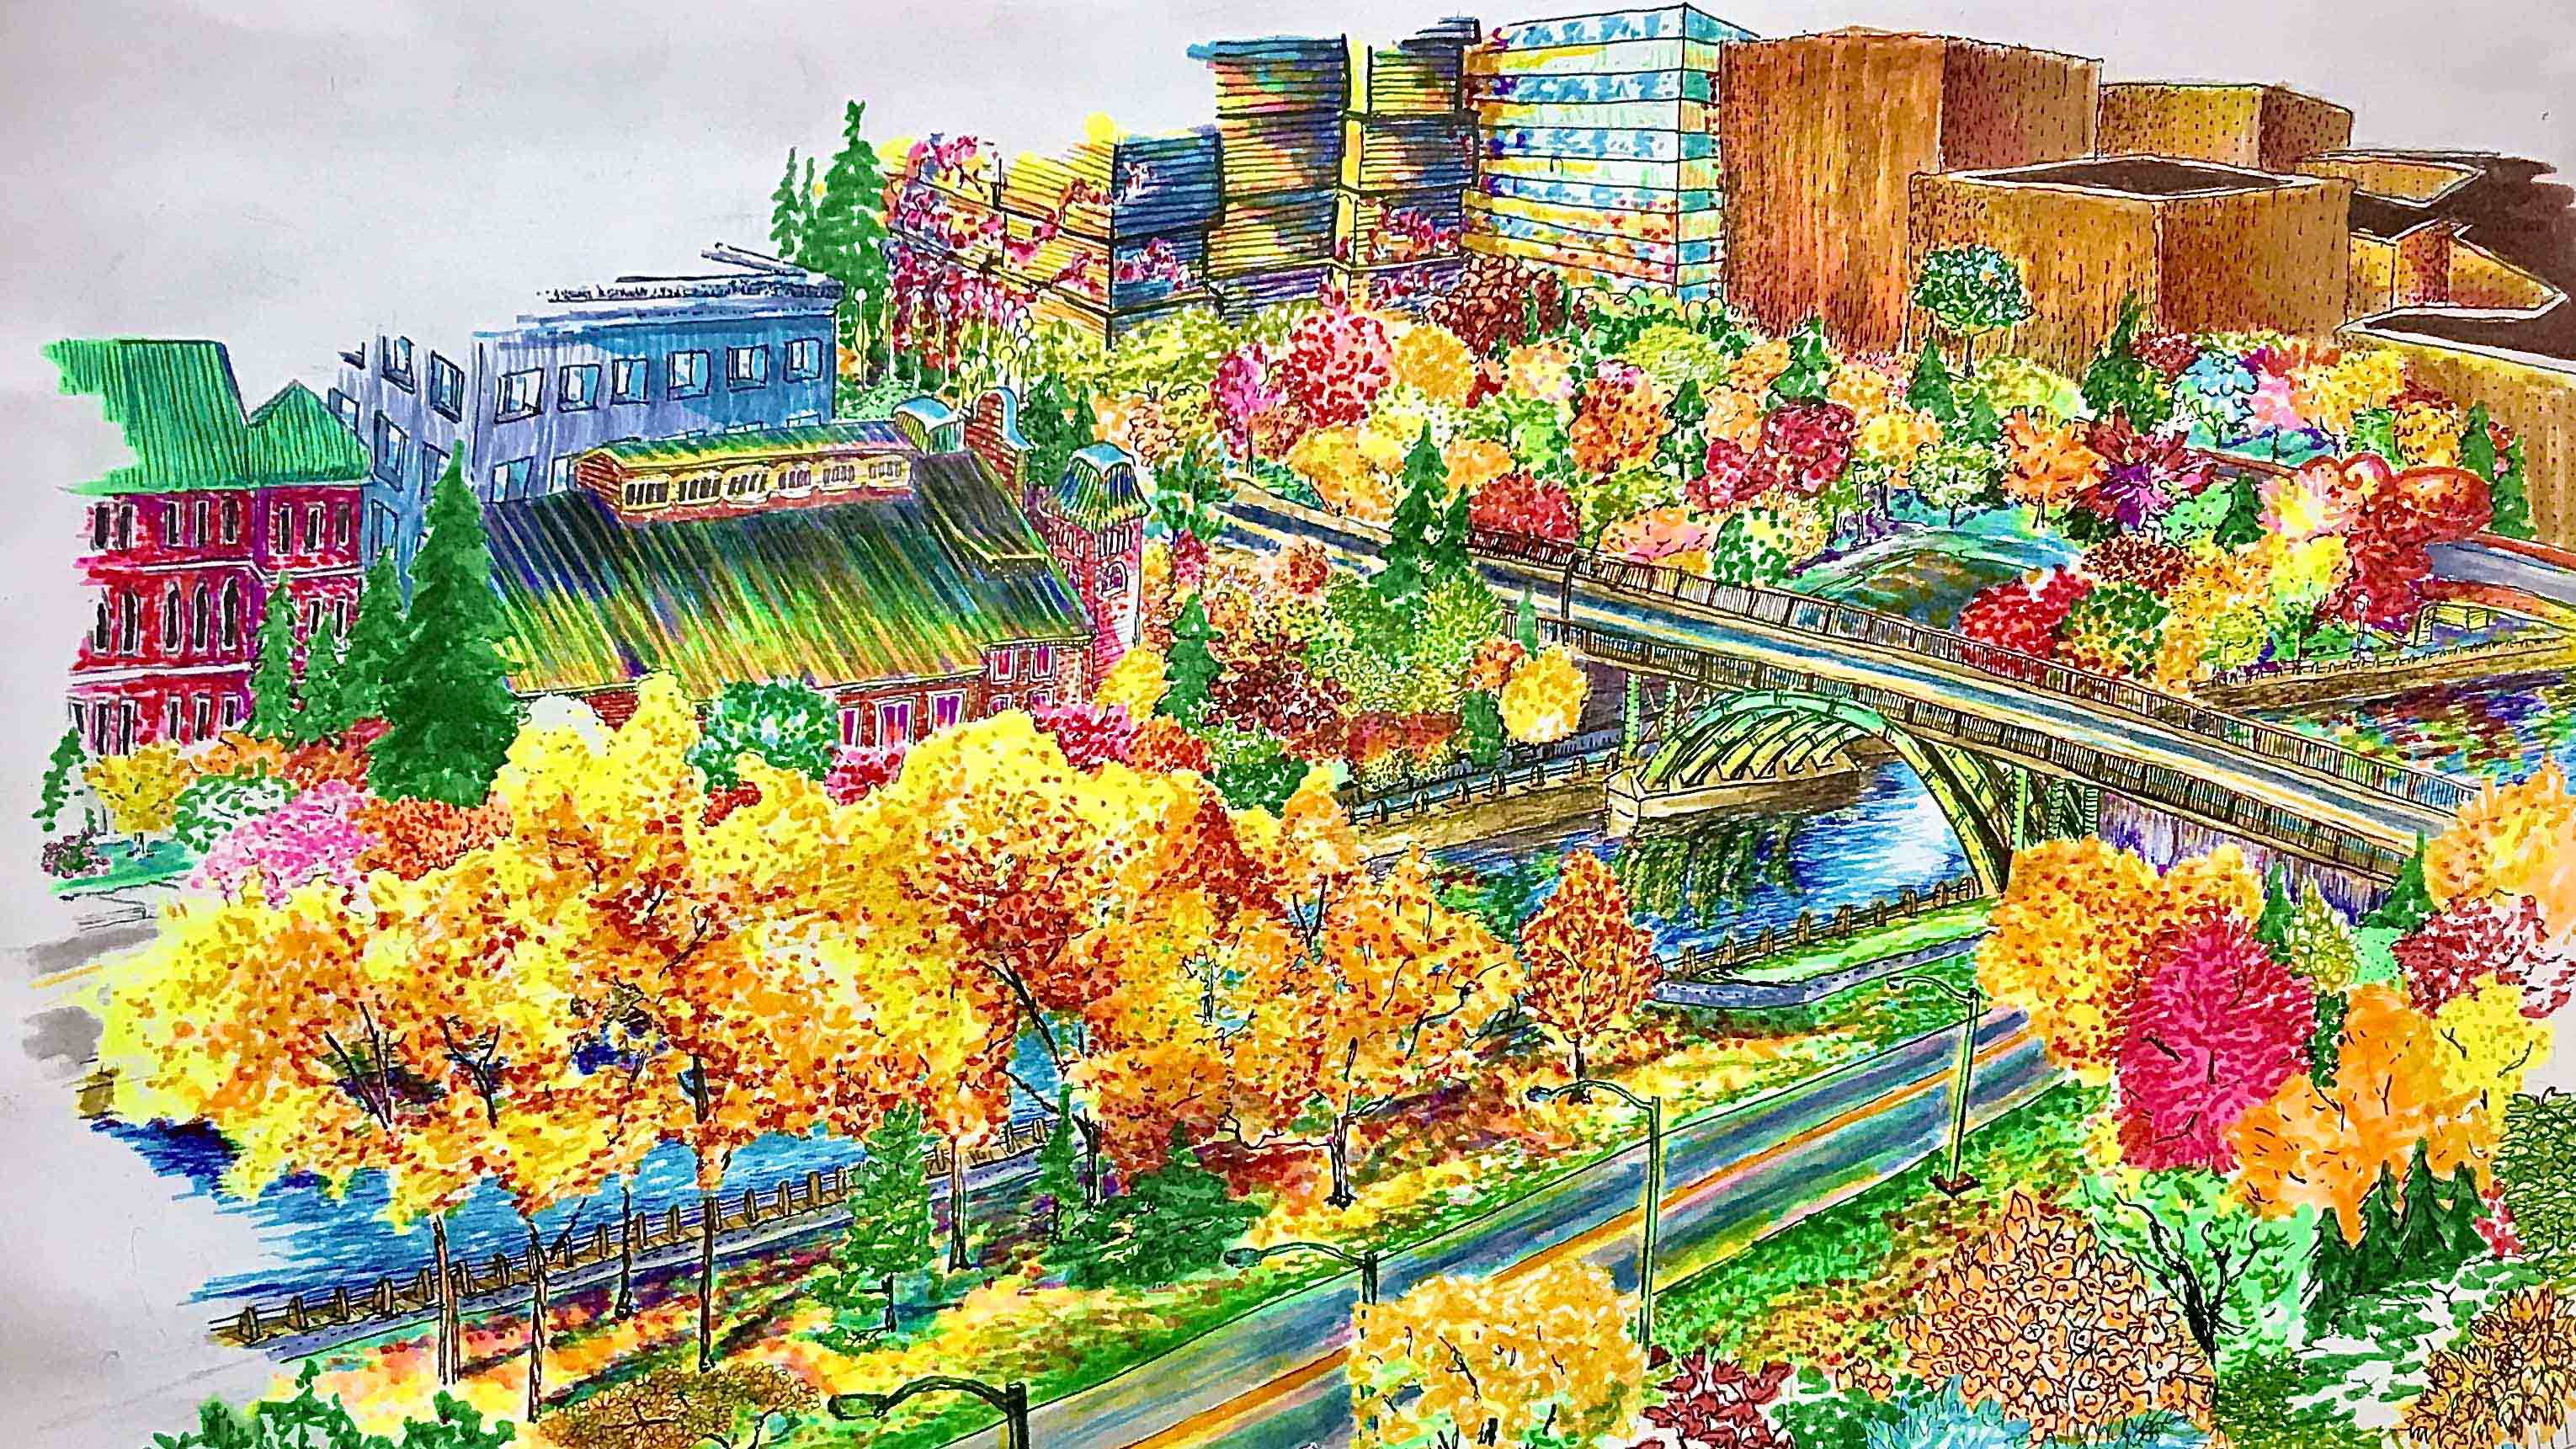 A drawing of a view from a uOttawa student's residence room view